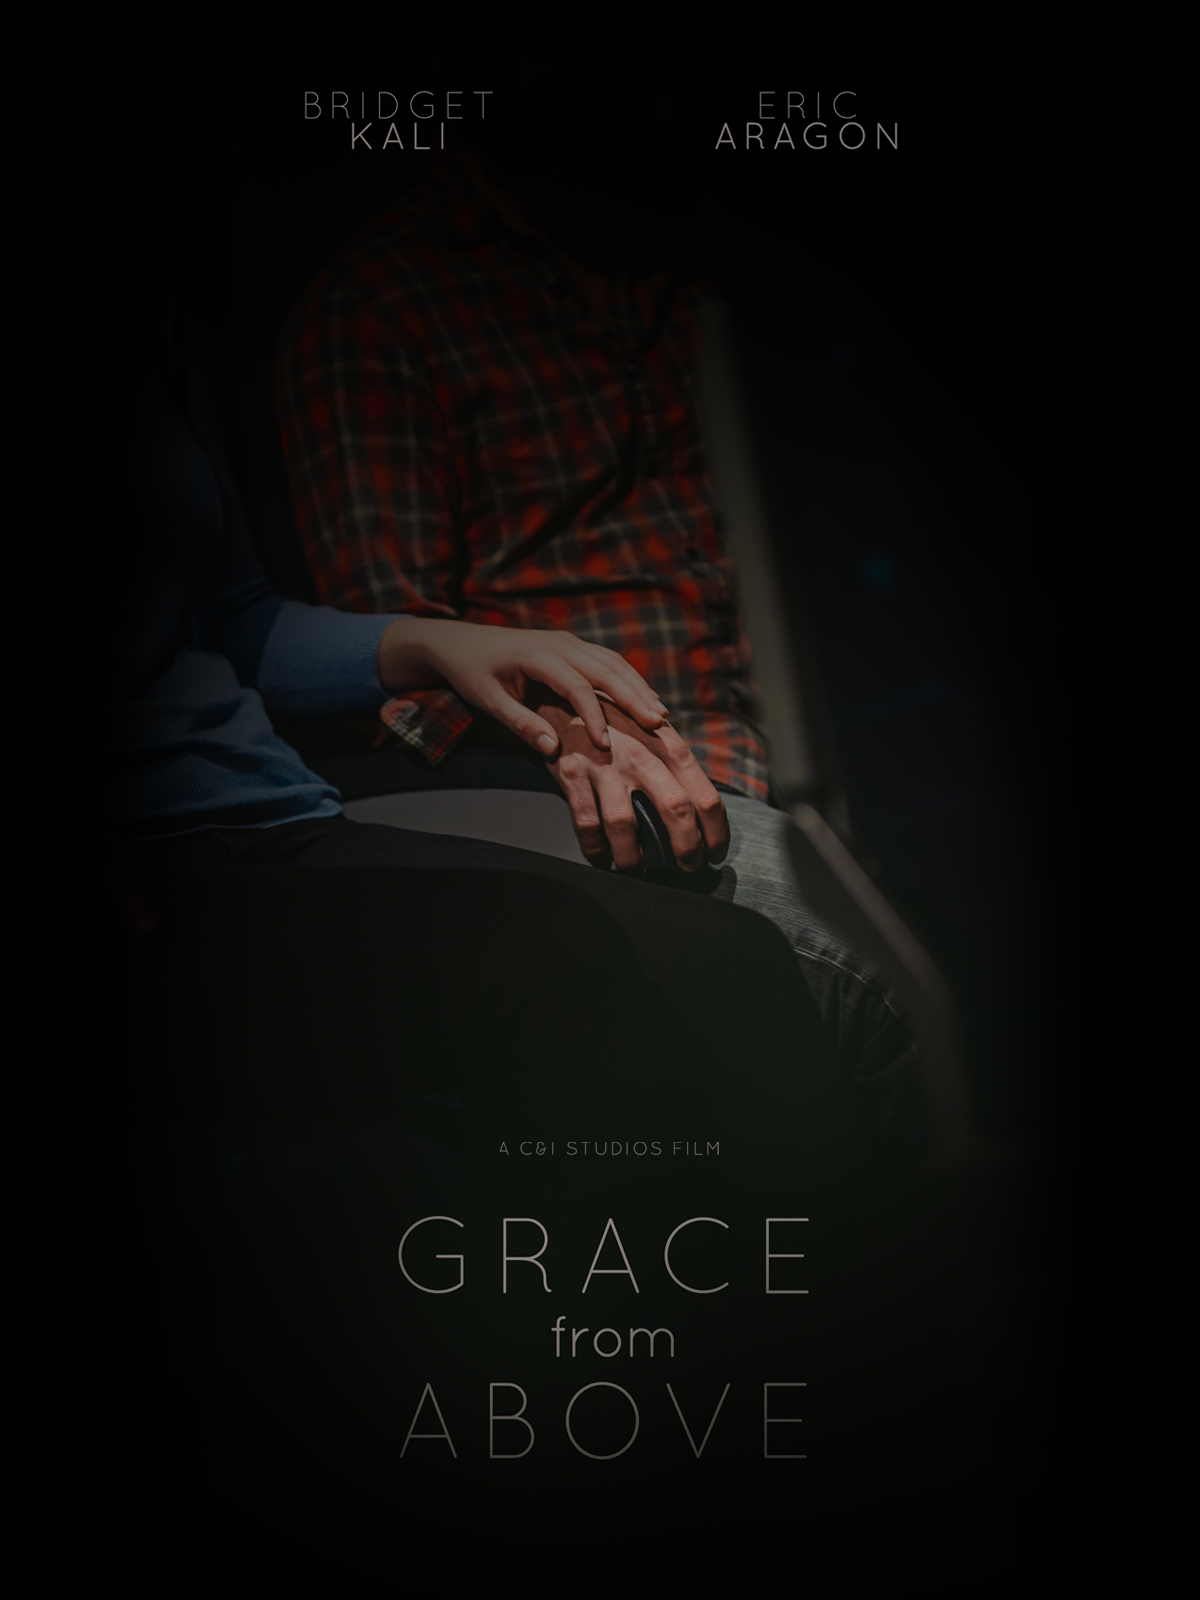 Grace From Above And Original C&I Films Short Film